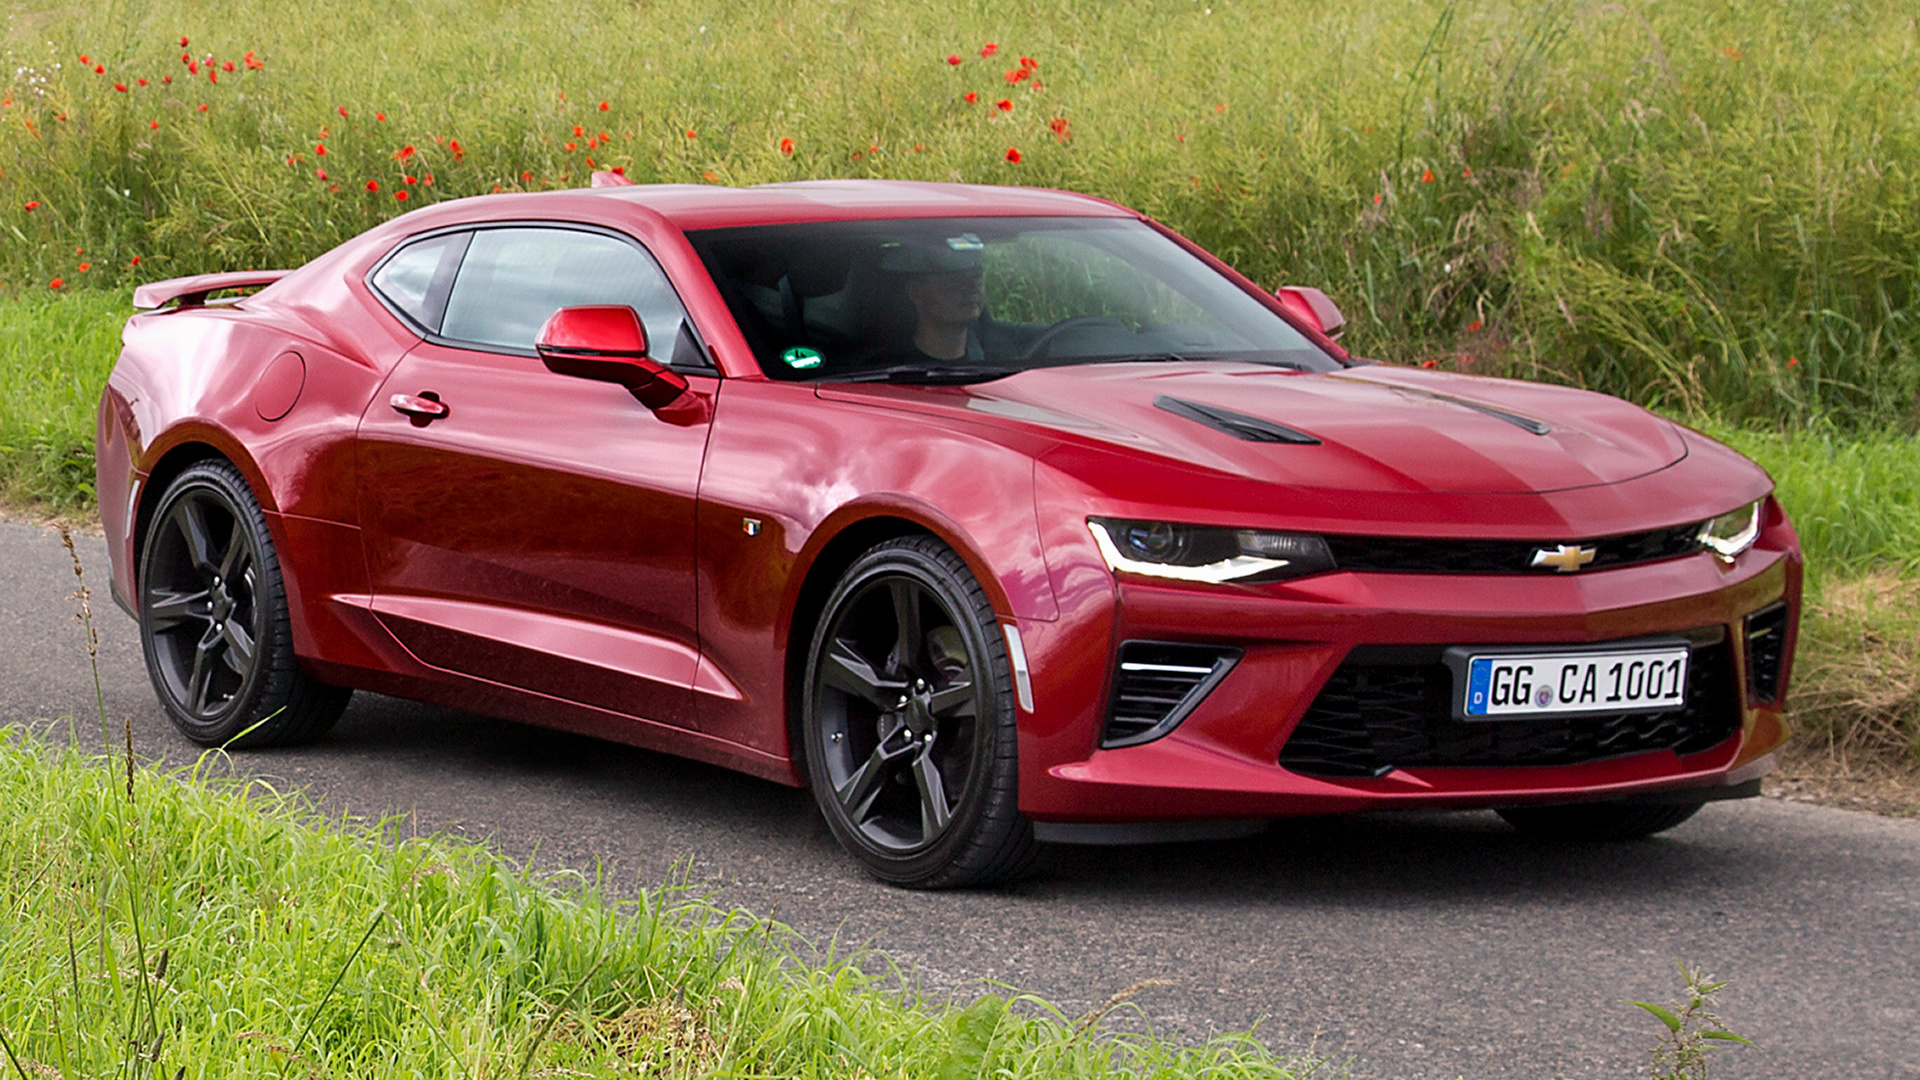 Chevrolet Camaro V8 2016 Eu Wallpapers And Hd Images